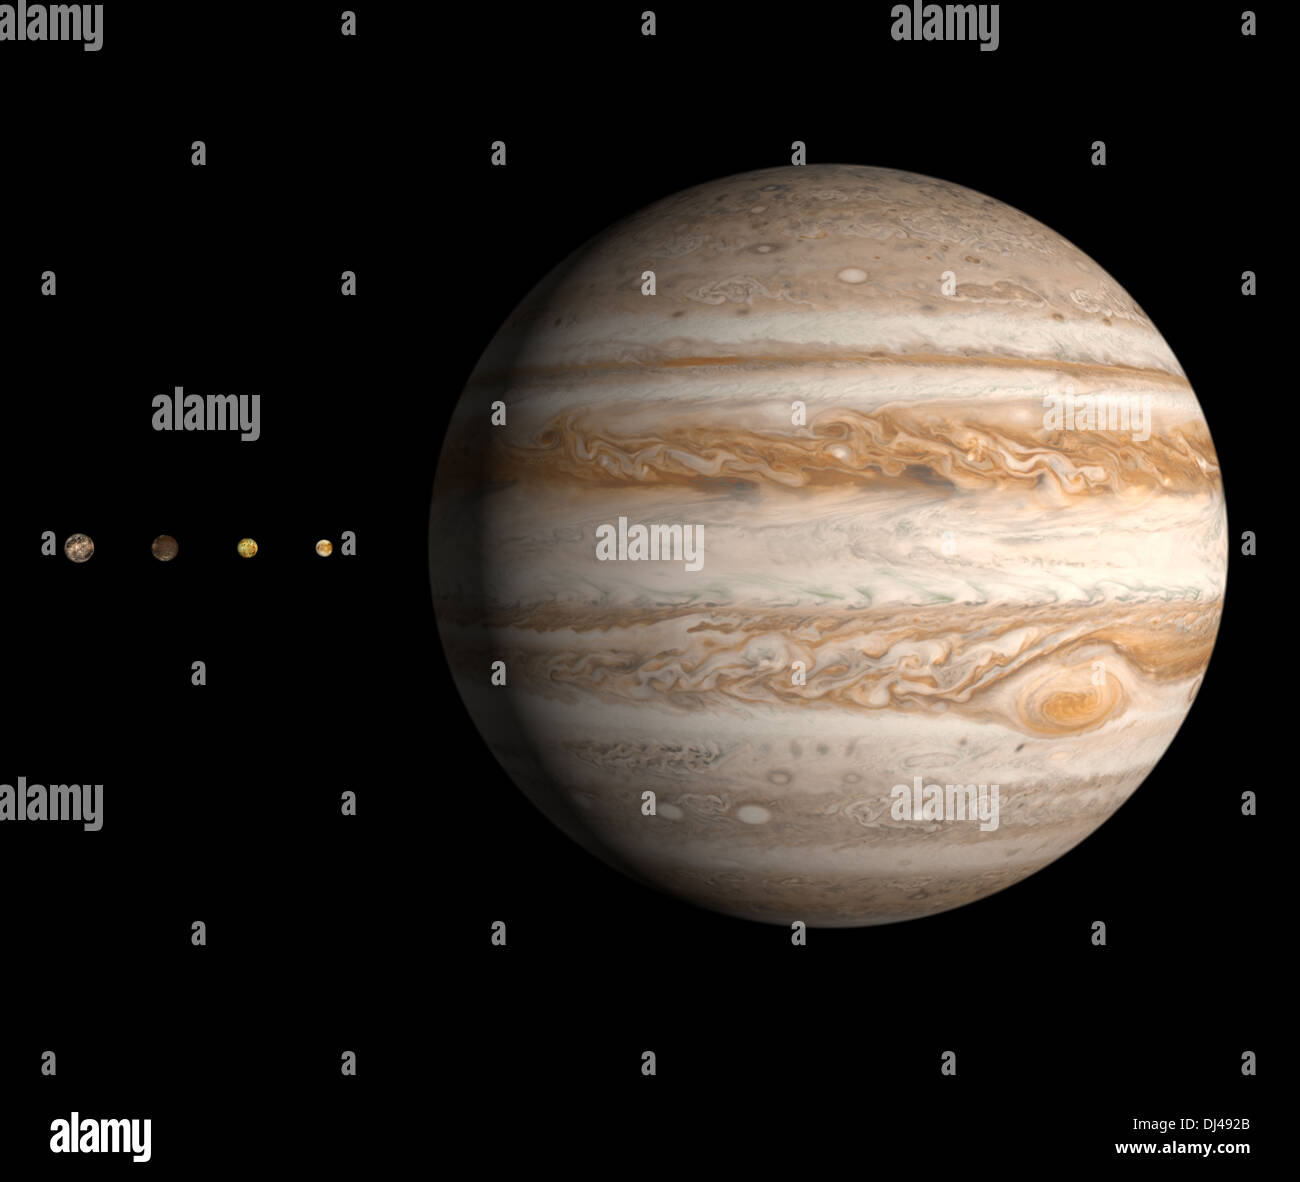 A rendered size comparison of the planet Jupiter and it's four largest moons Ganymede, Callisto, Europa and Io. - Stock Image